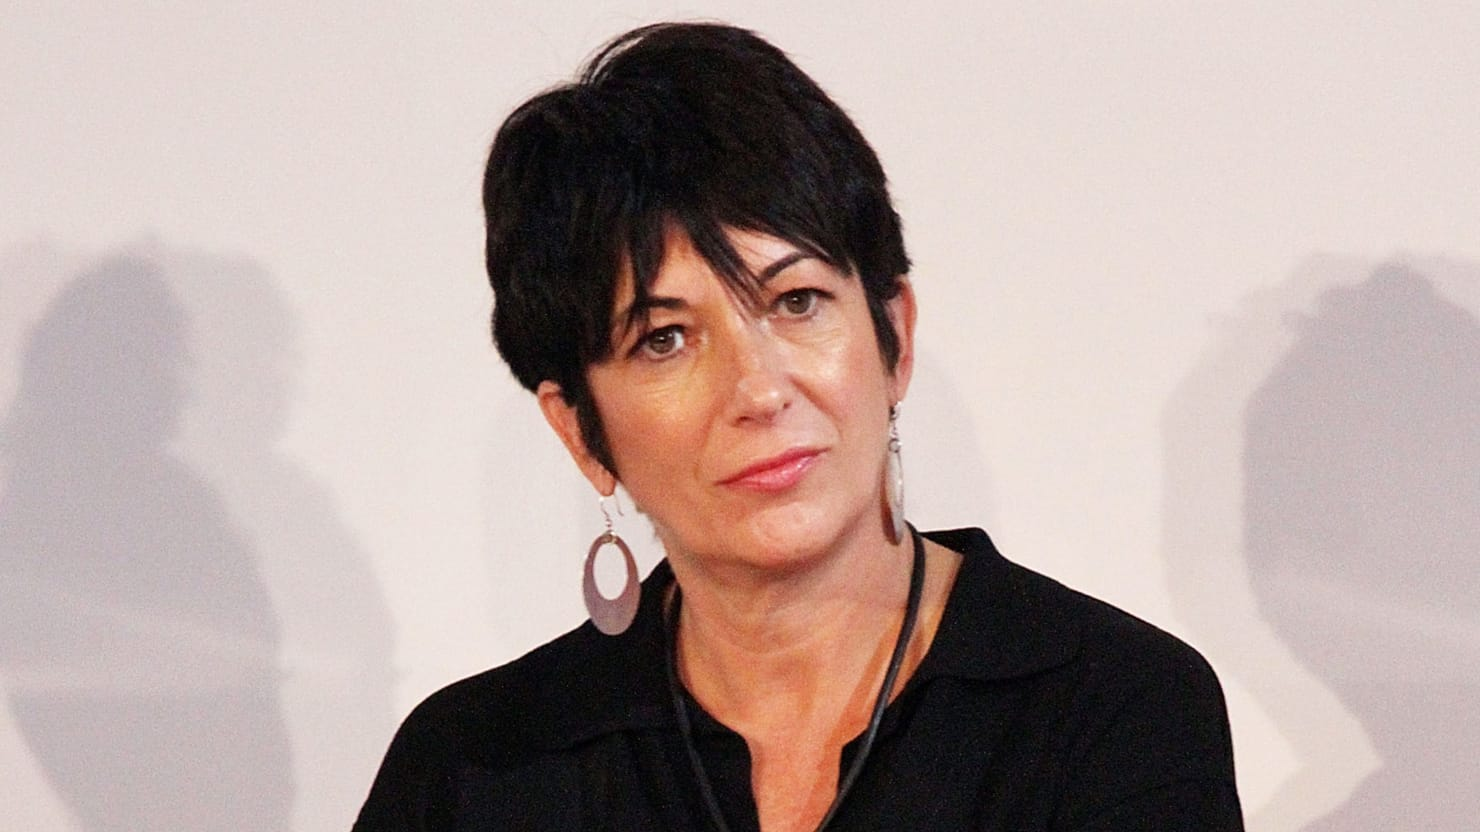 'Such a Relief': Epstein Victims Rejoice At Ghislaine Maxwell's Arrest